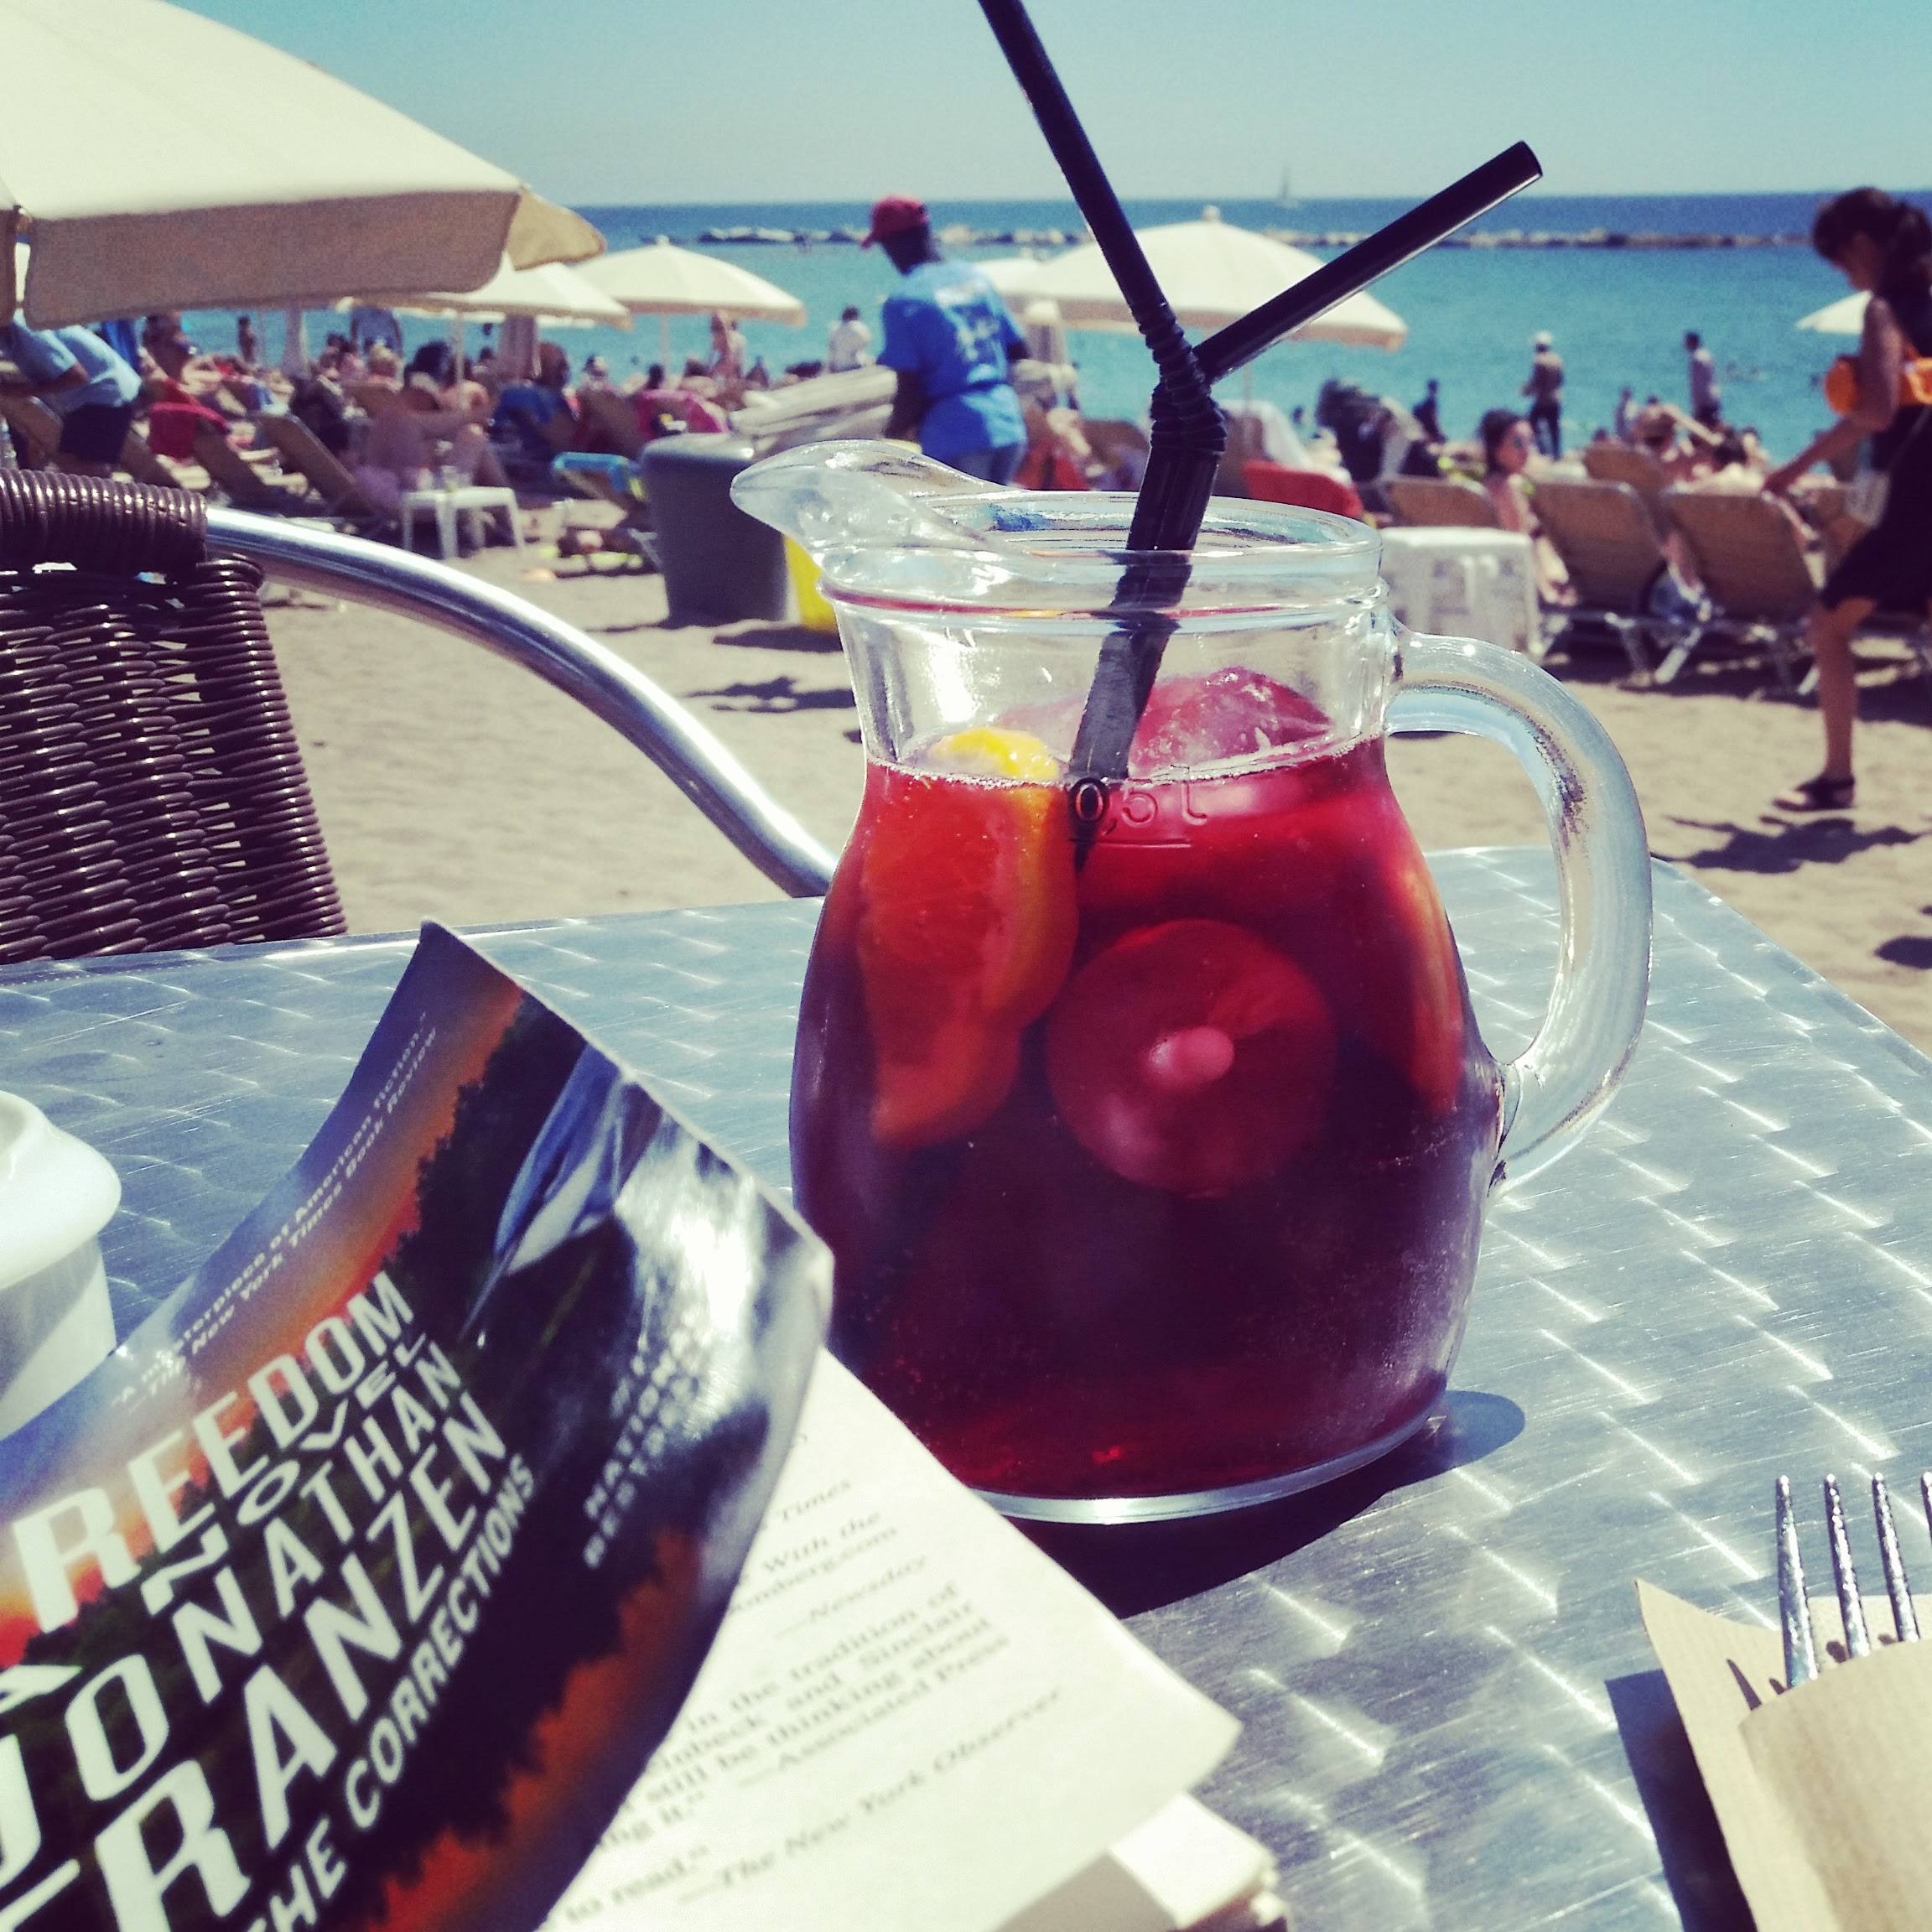 I was in Spain all last week. Here is a sangria, which I miss already, on the beach in Barcelona.